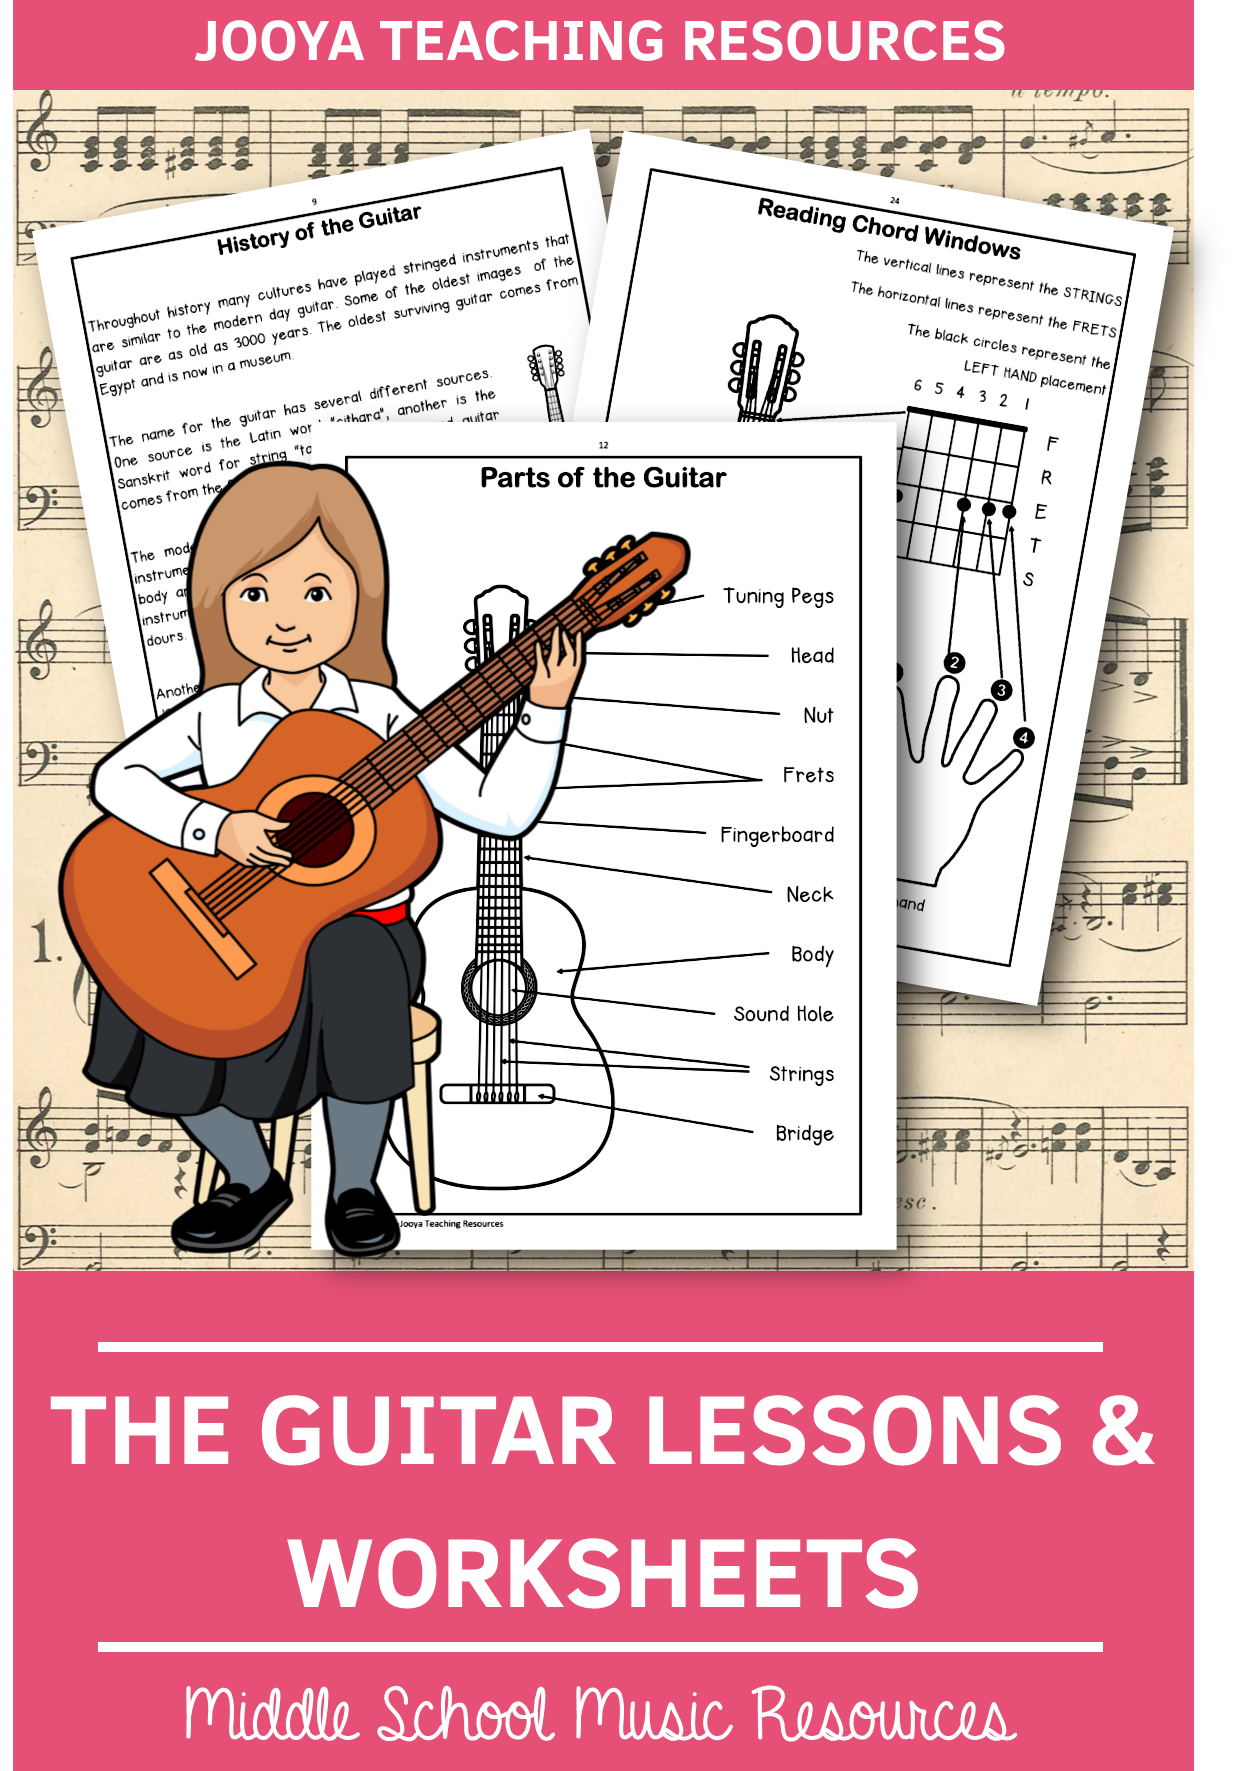 The Guitar Worksheets And Lessons